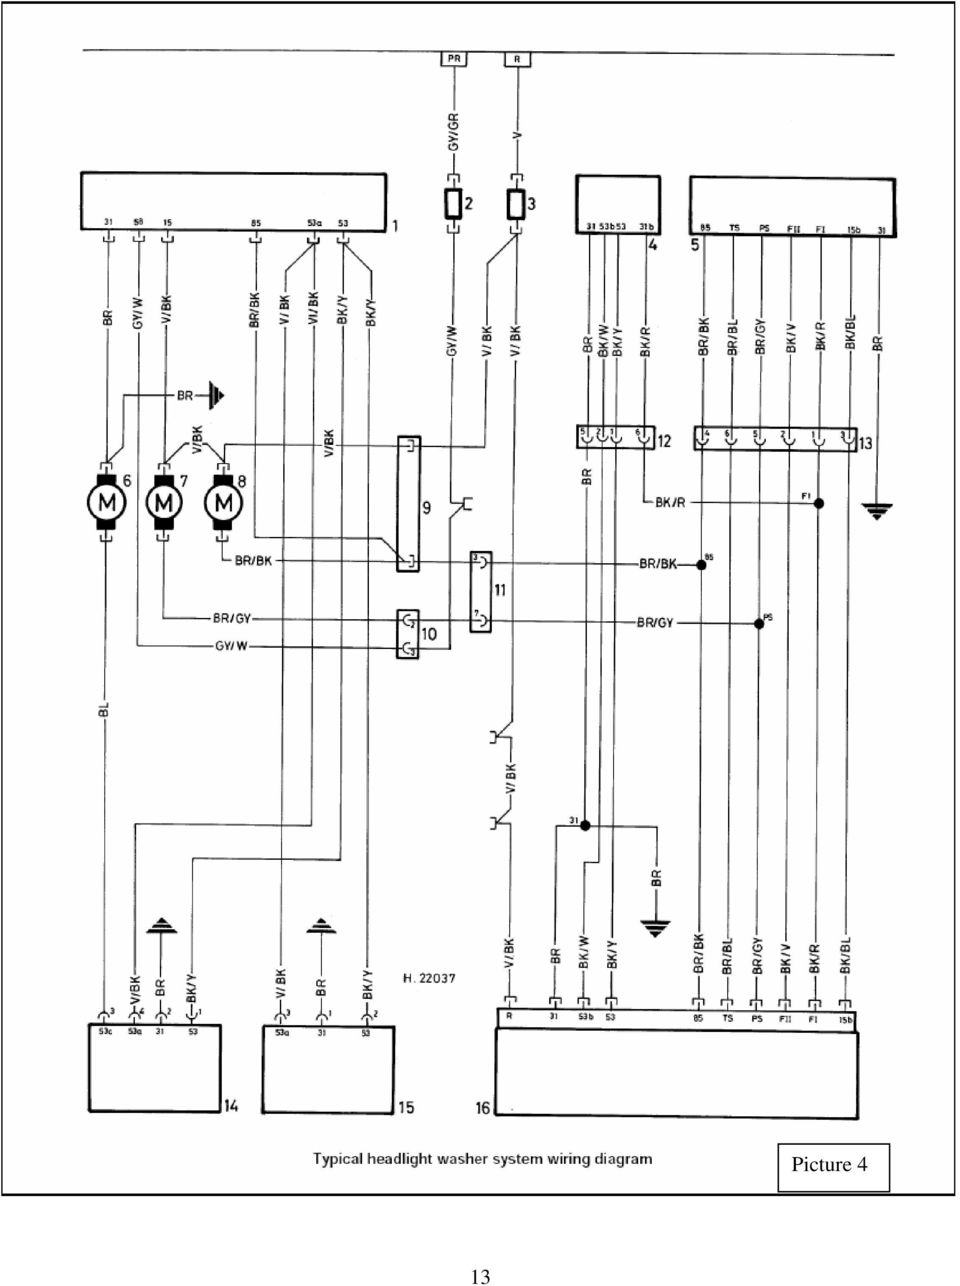 medium resolution of 14 key to headlighl washer syslem wiring diagram picture 4 1 control unit for headlight cleaners on fluid reservoir 2 fuse overnight tail and